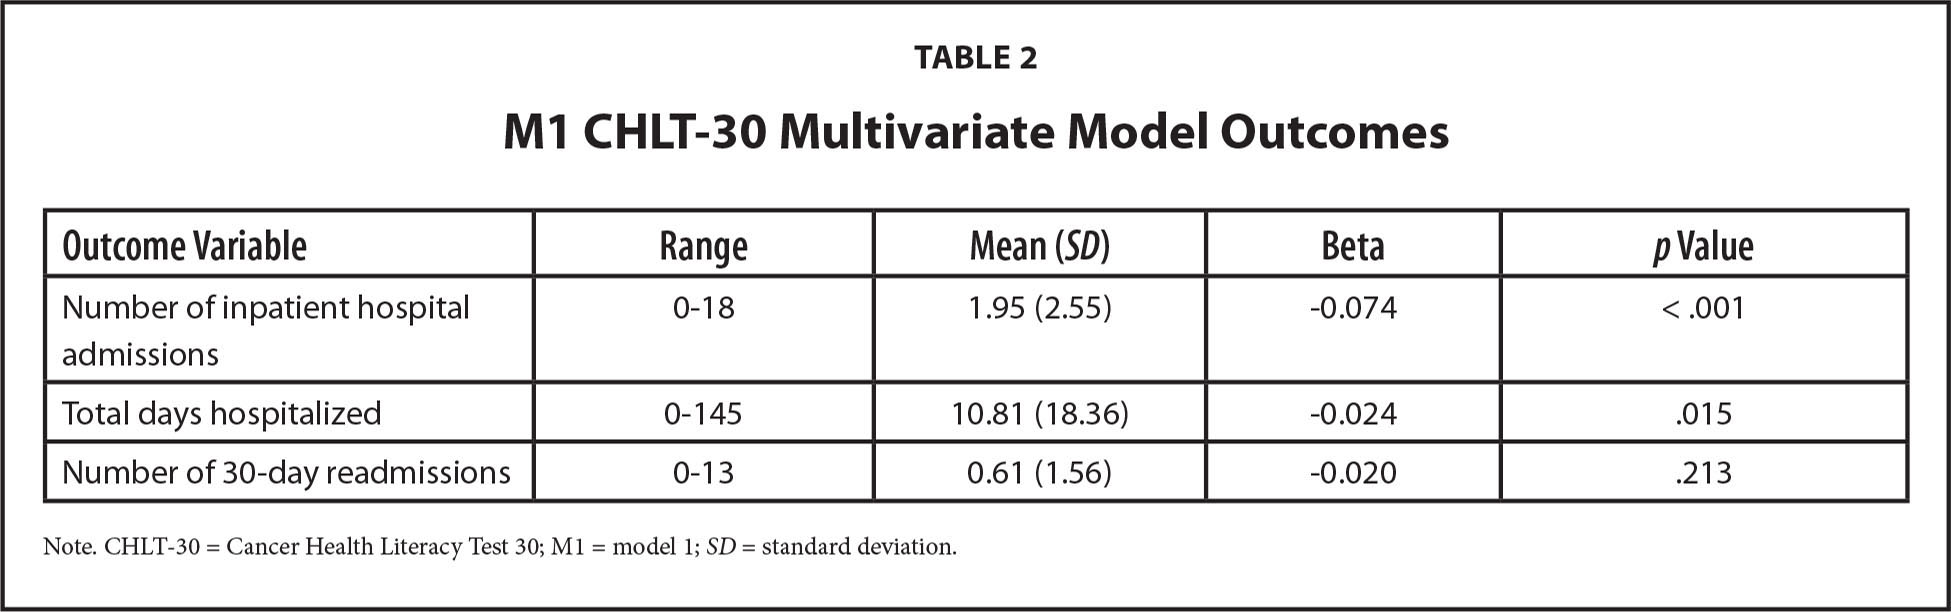 M1 CHLT-30 Multivariate Model Outcomes